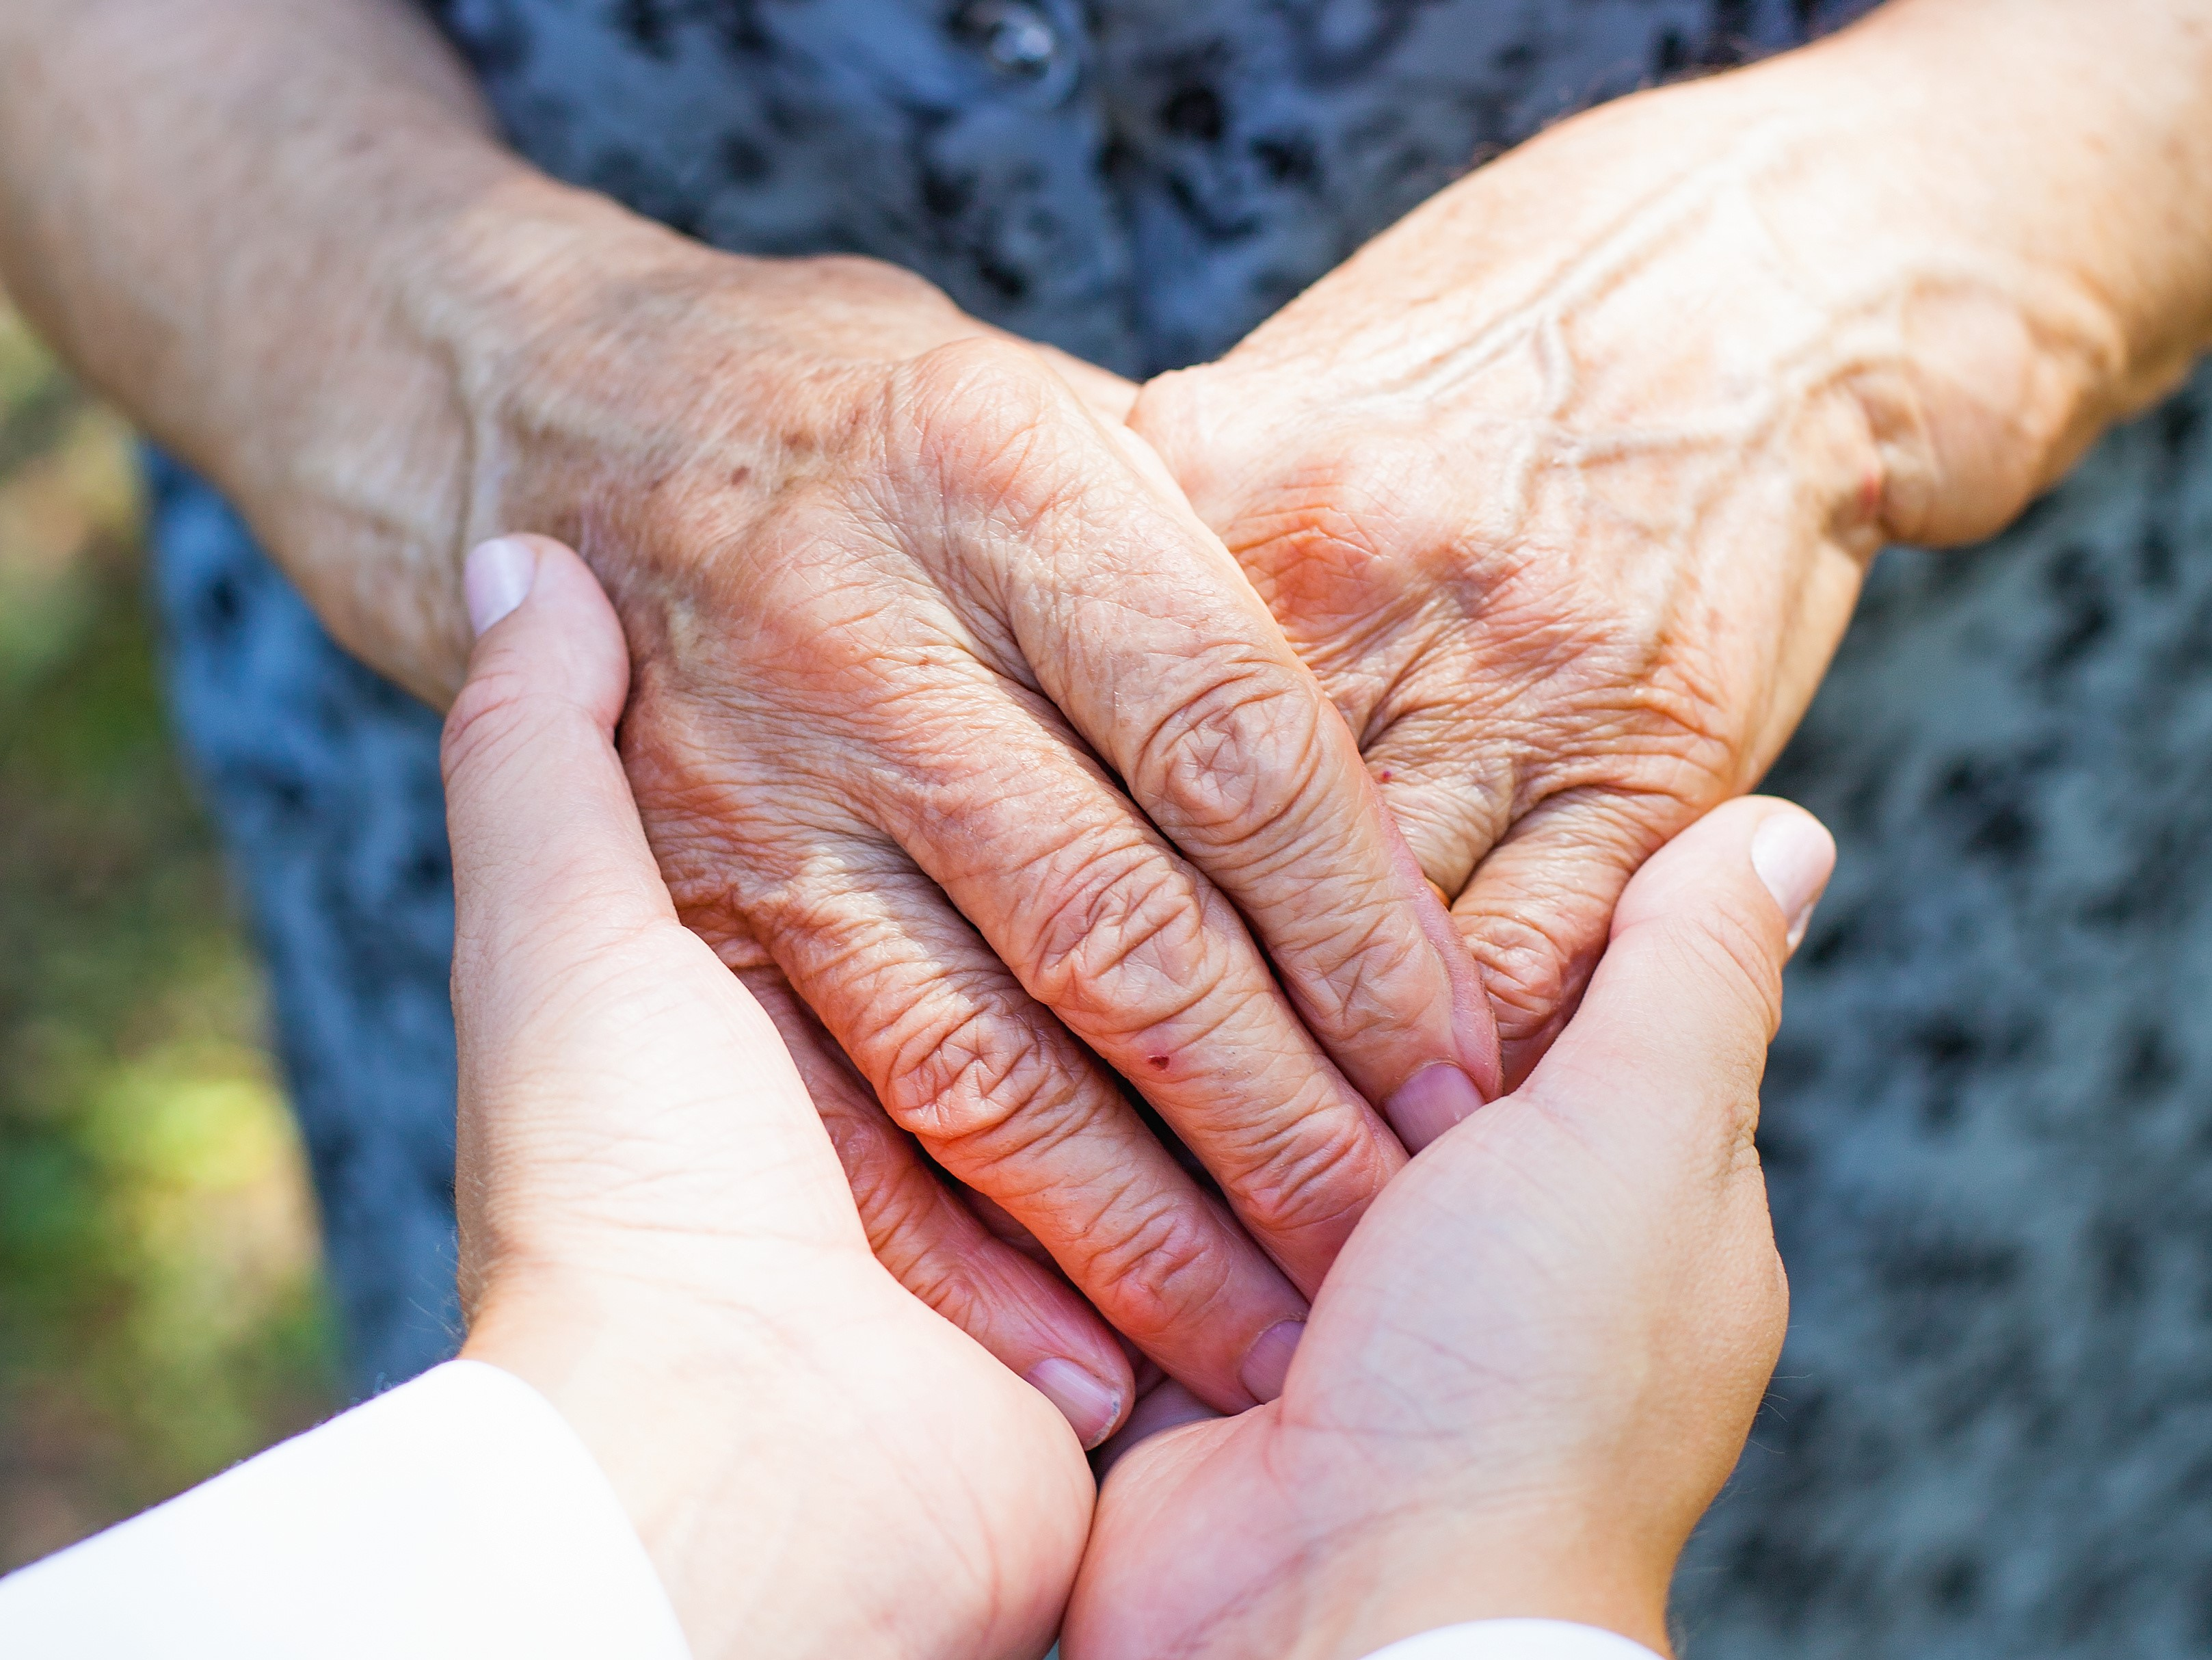 Preparing for Change Following the Royal Commission into Aged Care